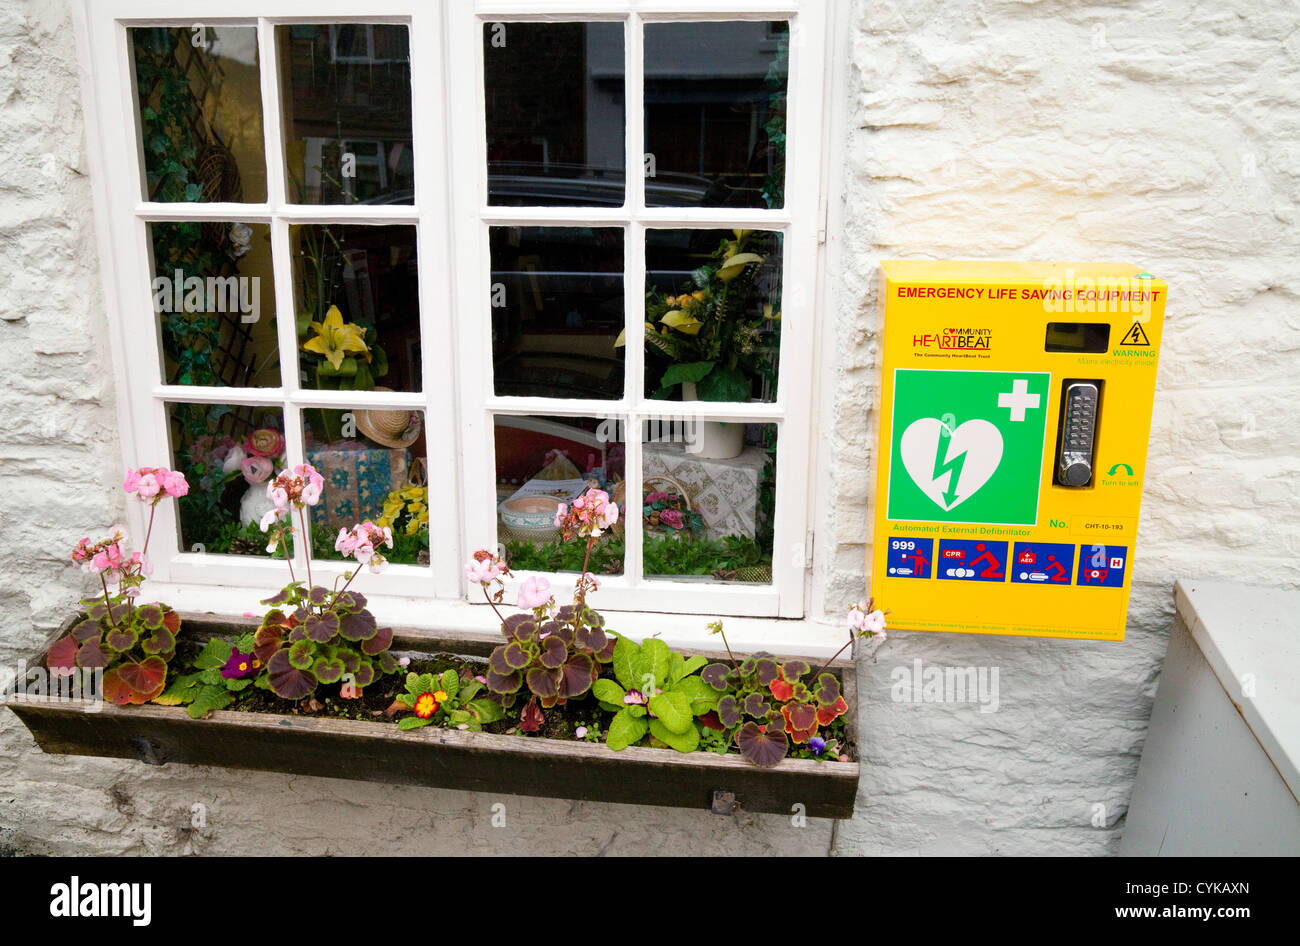 A cardiac heart defibrillator available to the public on the wall in Clun village, Shropshire UK - Stock Image